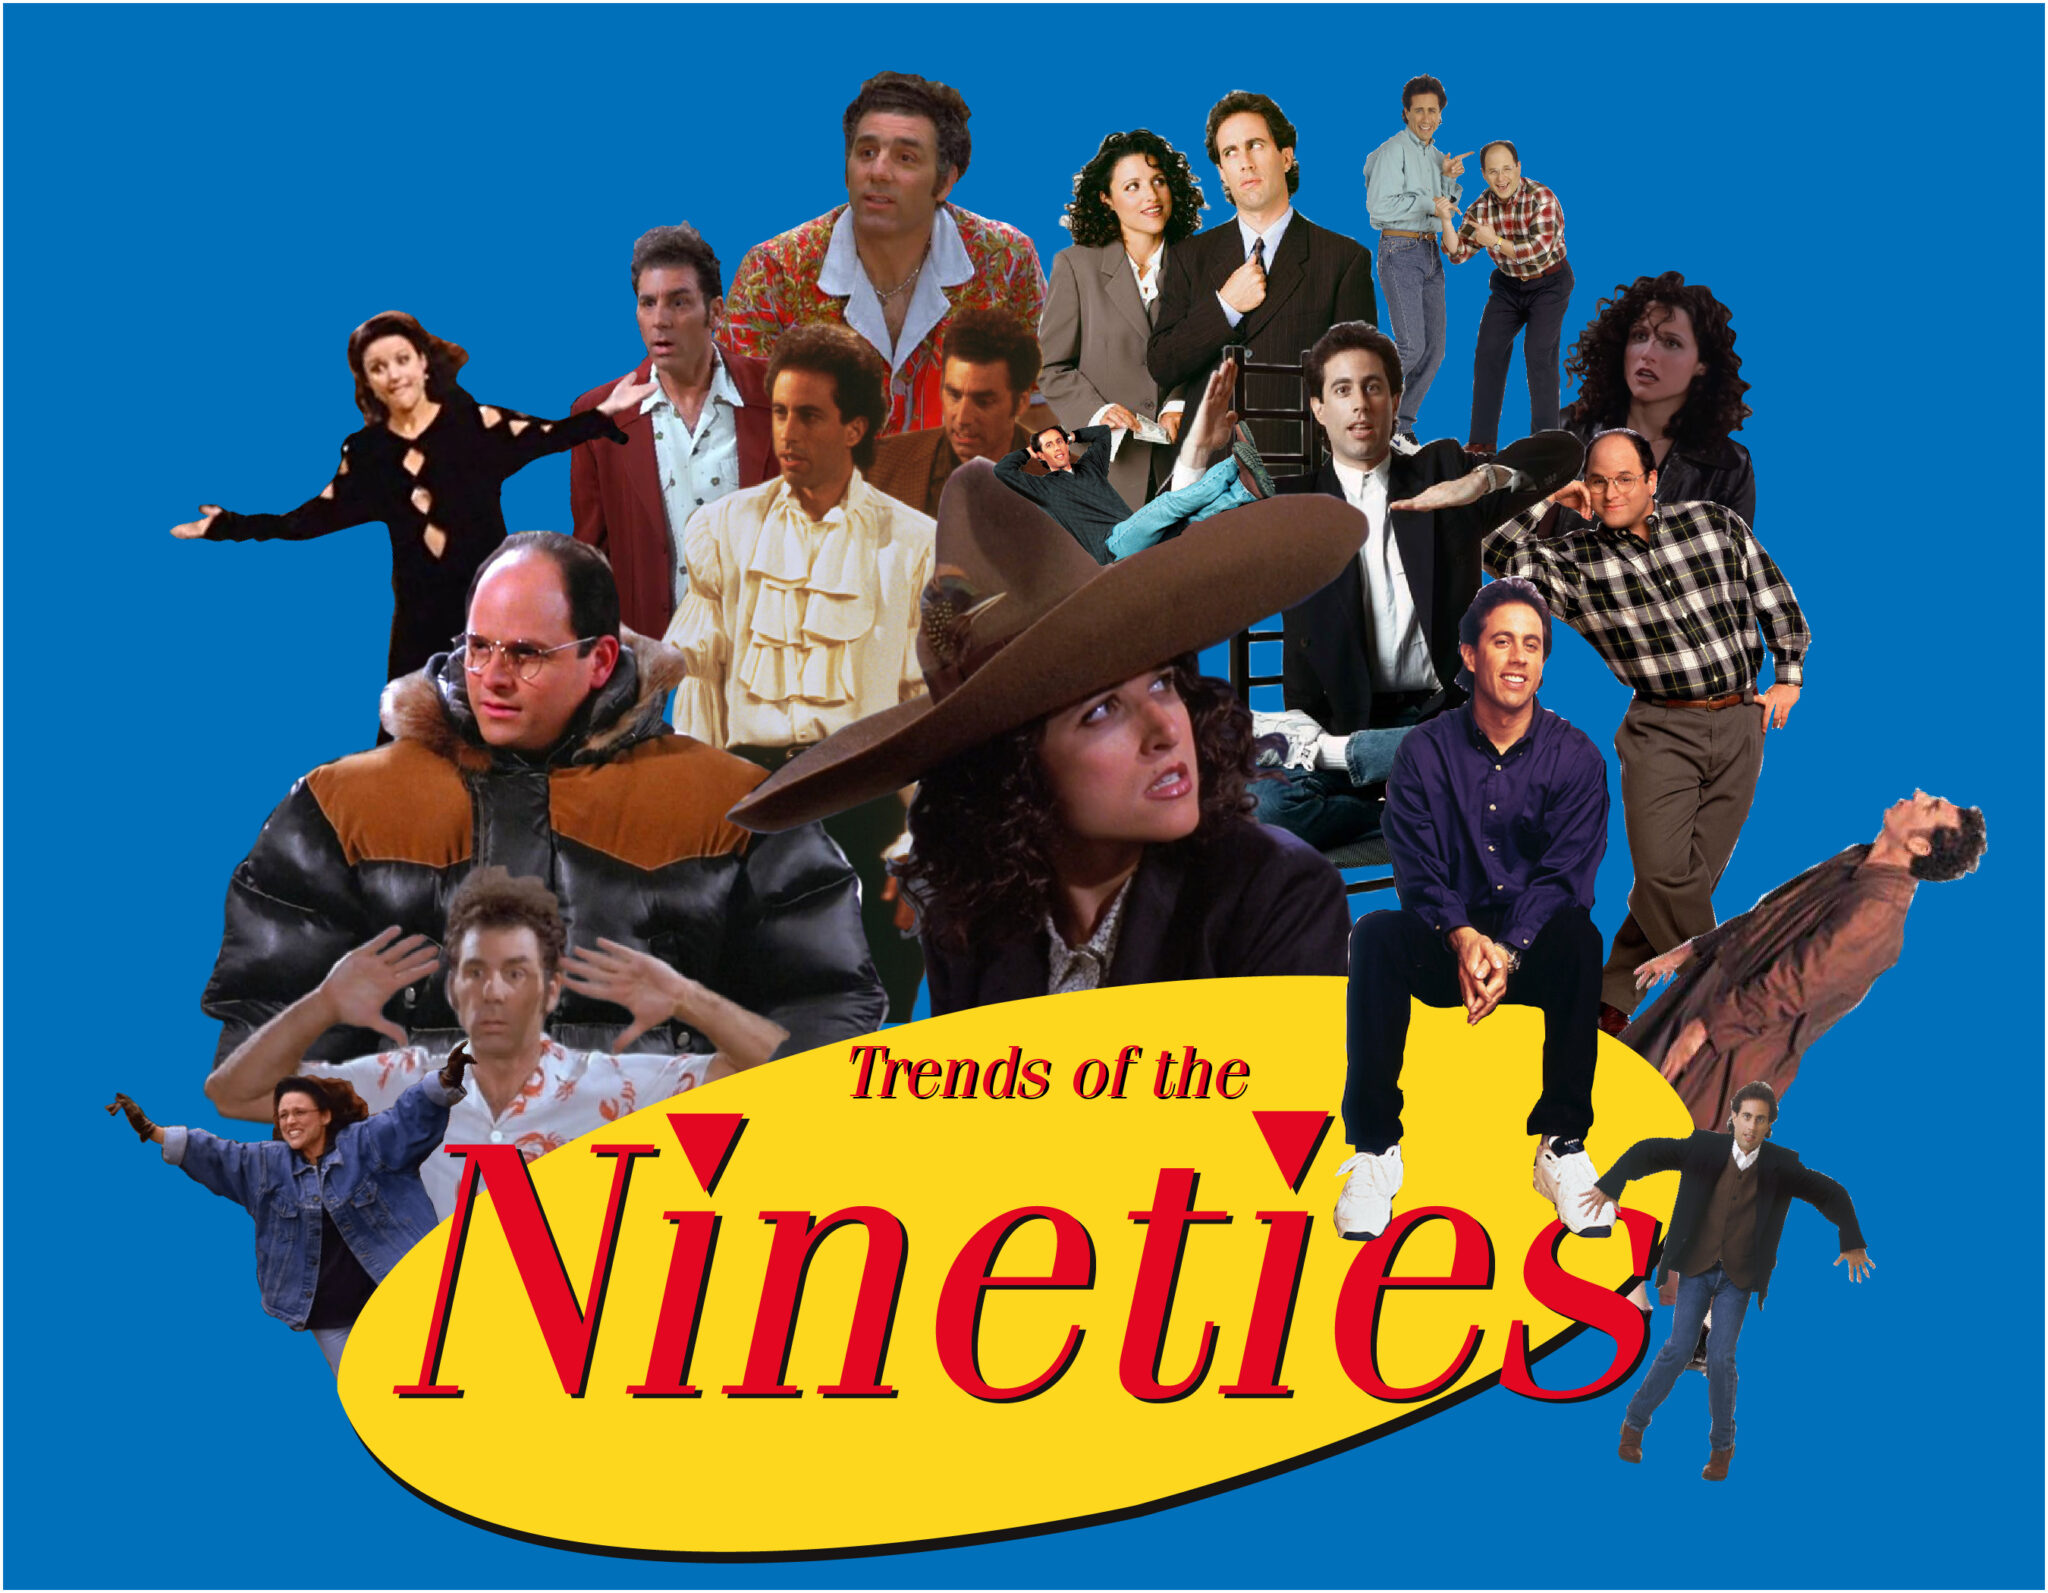 """A collage of various moments from Seinfeld that exhibit the sitcom's fashion impact. In the bottom center, red text on top of a yellow oval reads, """"Trends of the Nineties""""."""